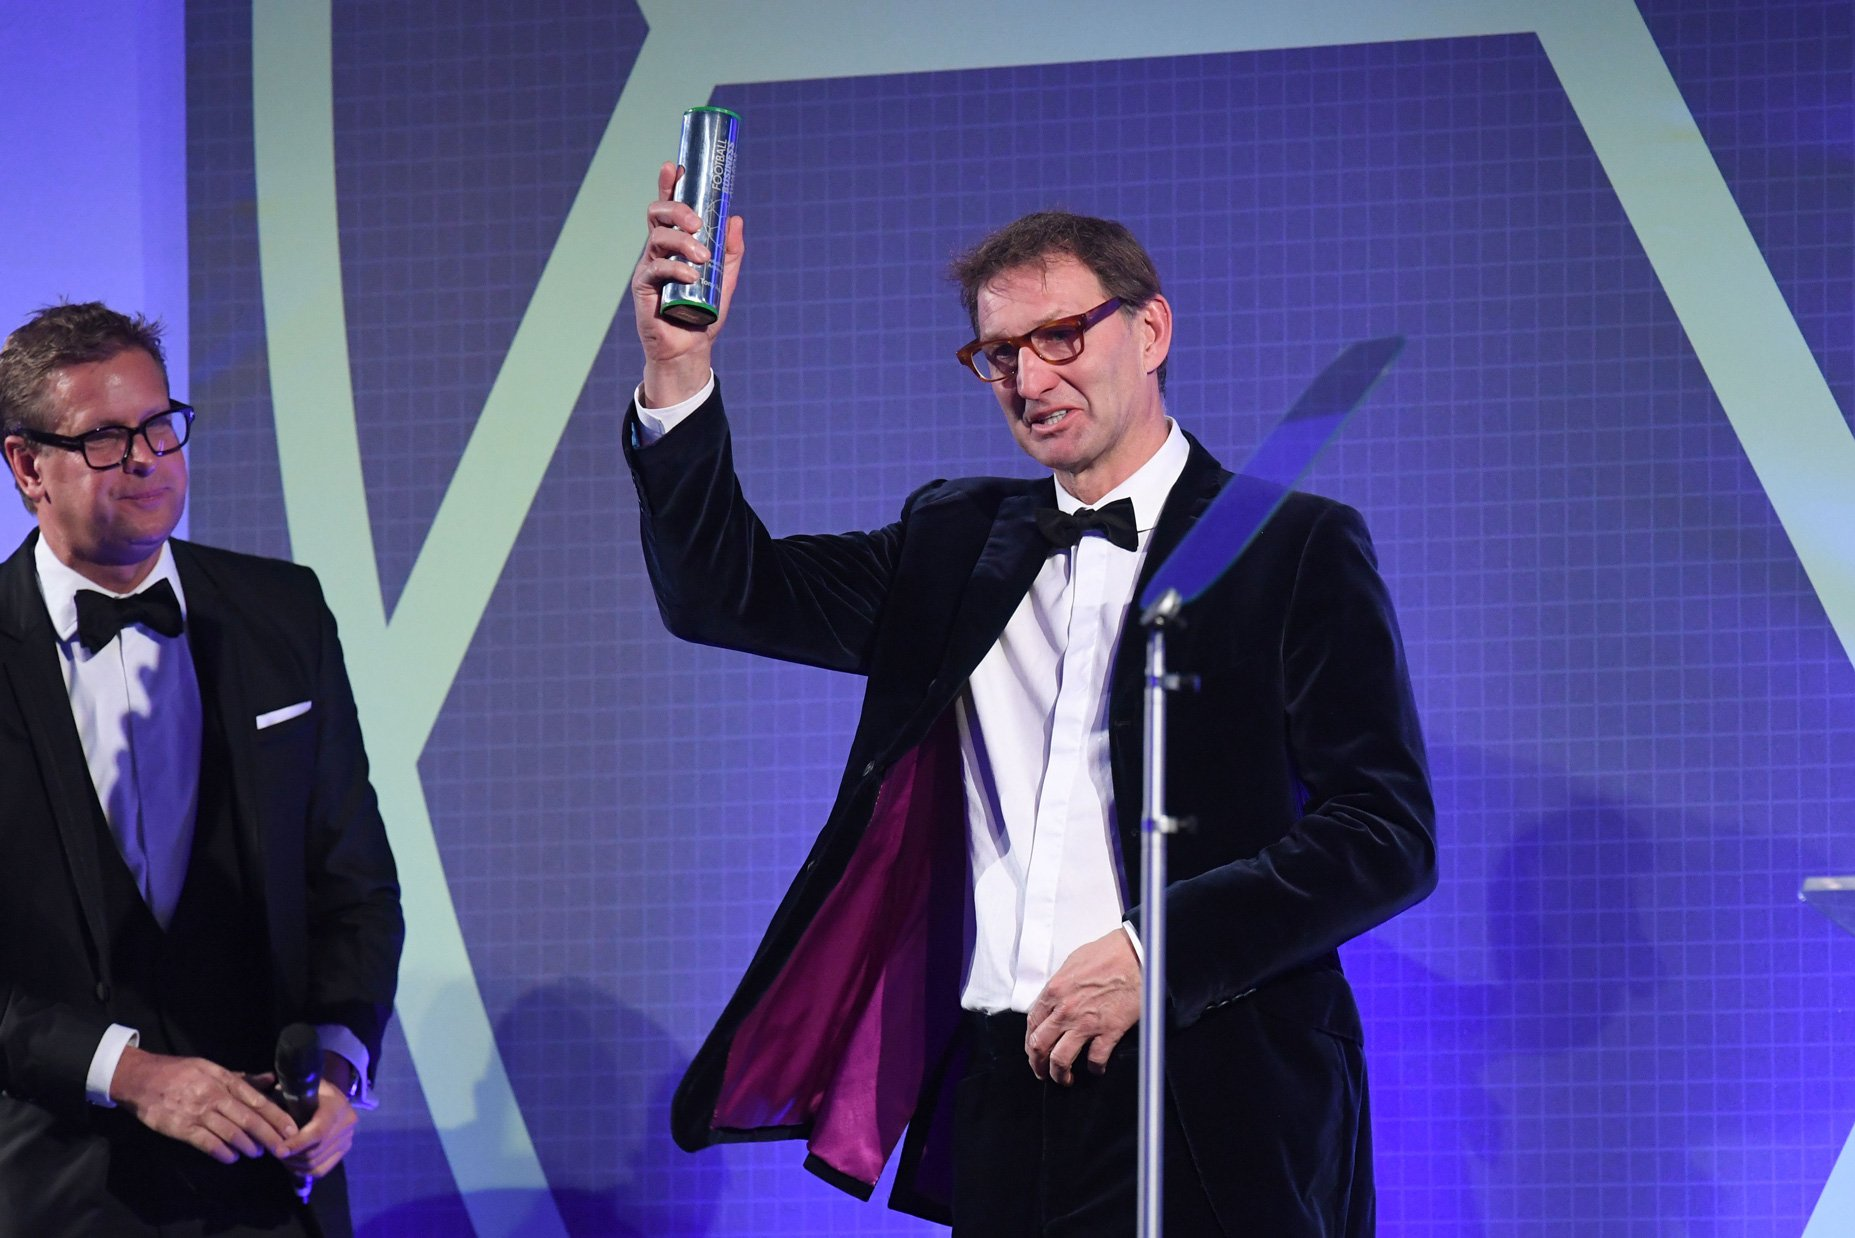 Tony Adams receives the 2018 Global Football Ambassador Award